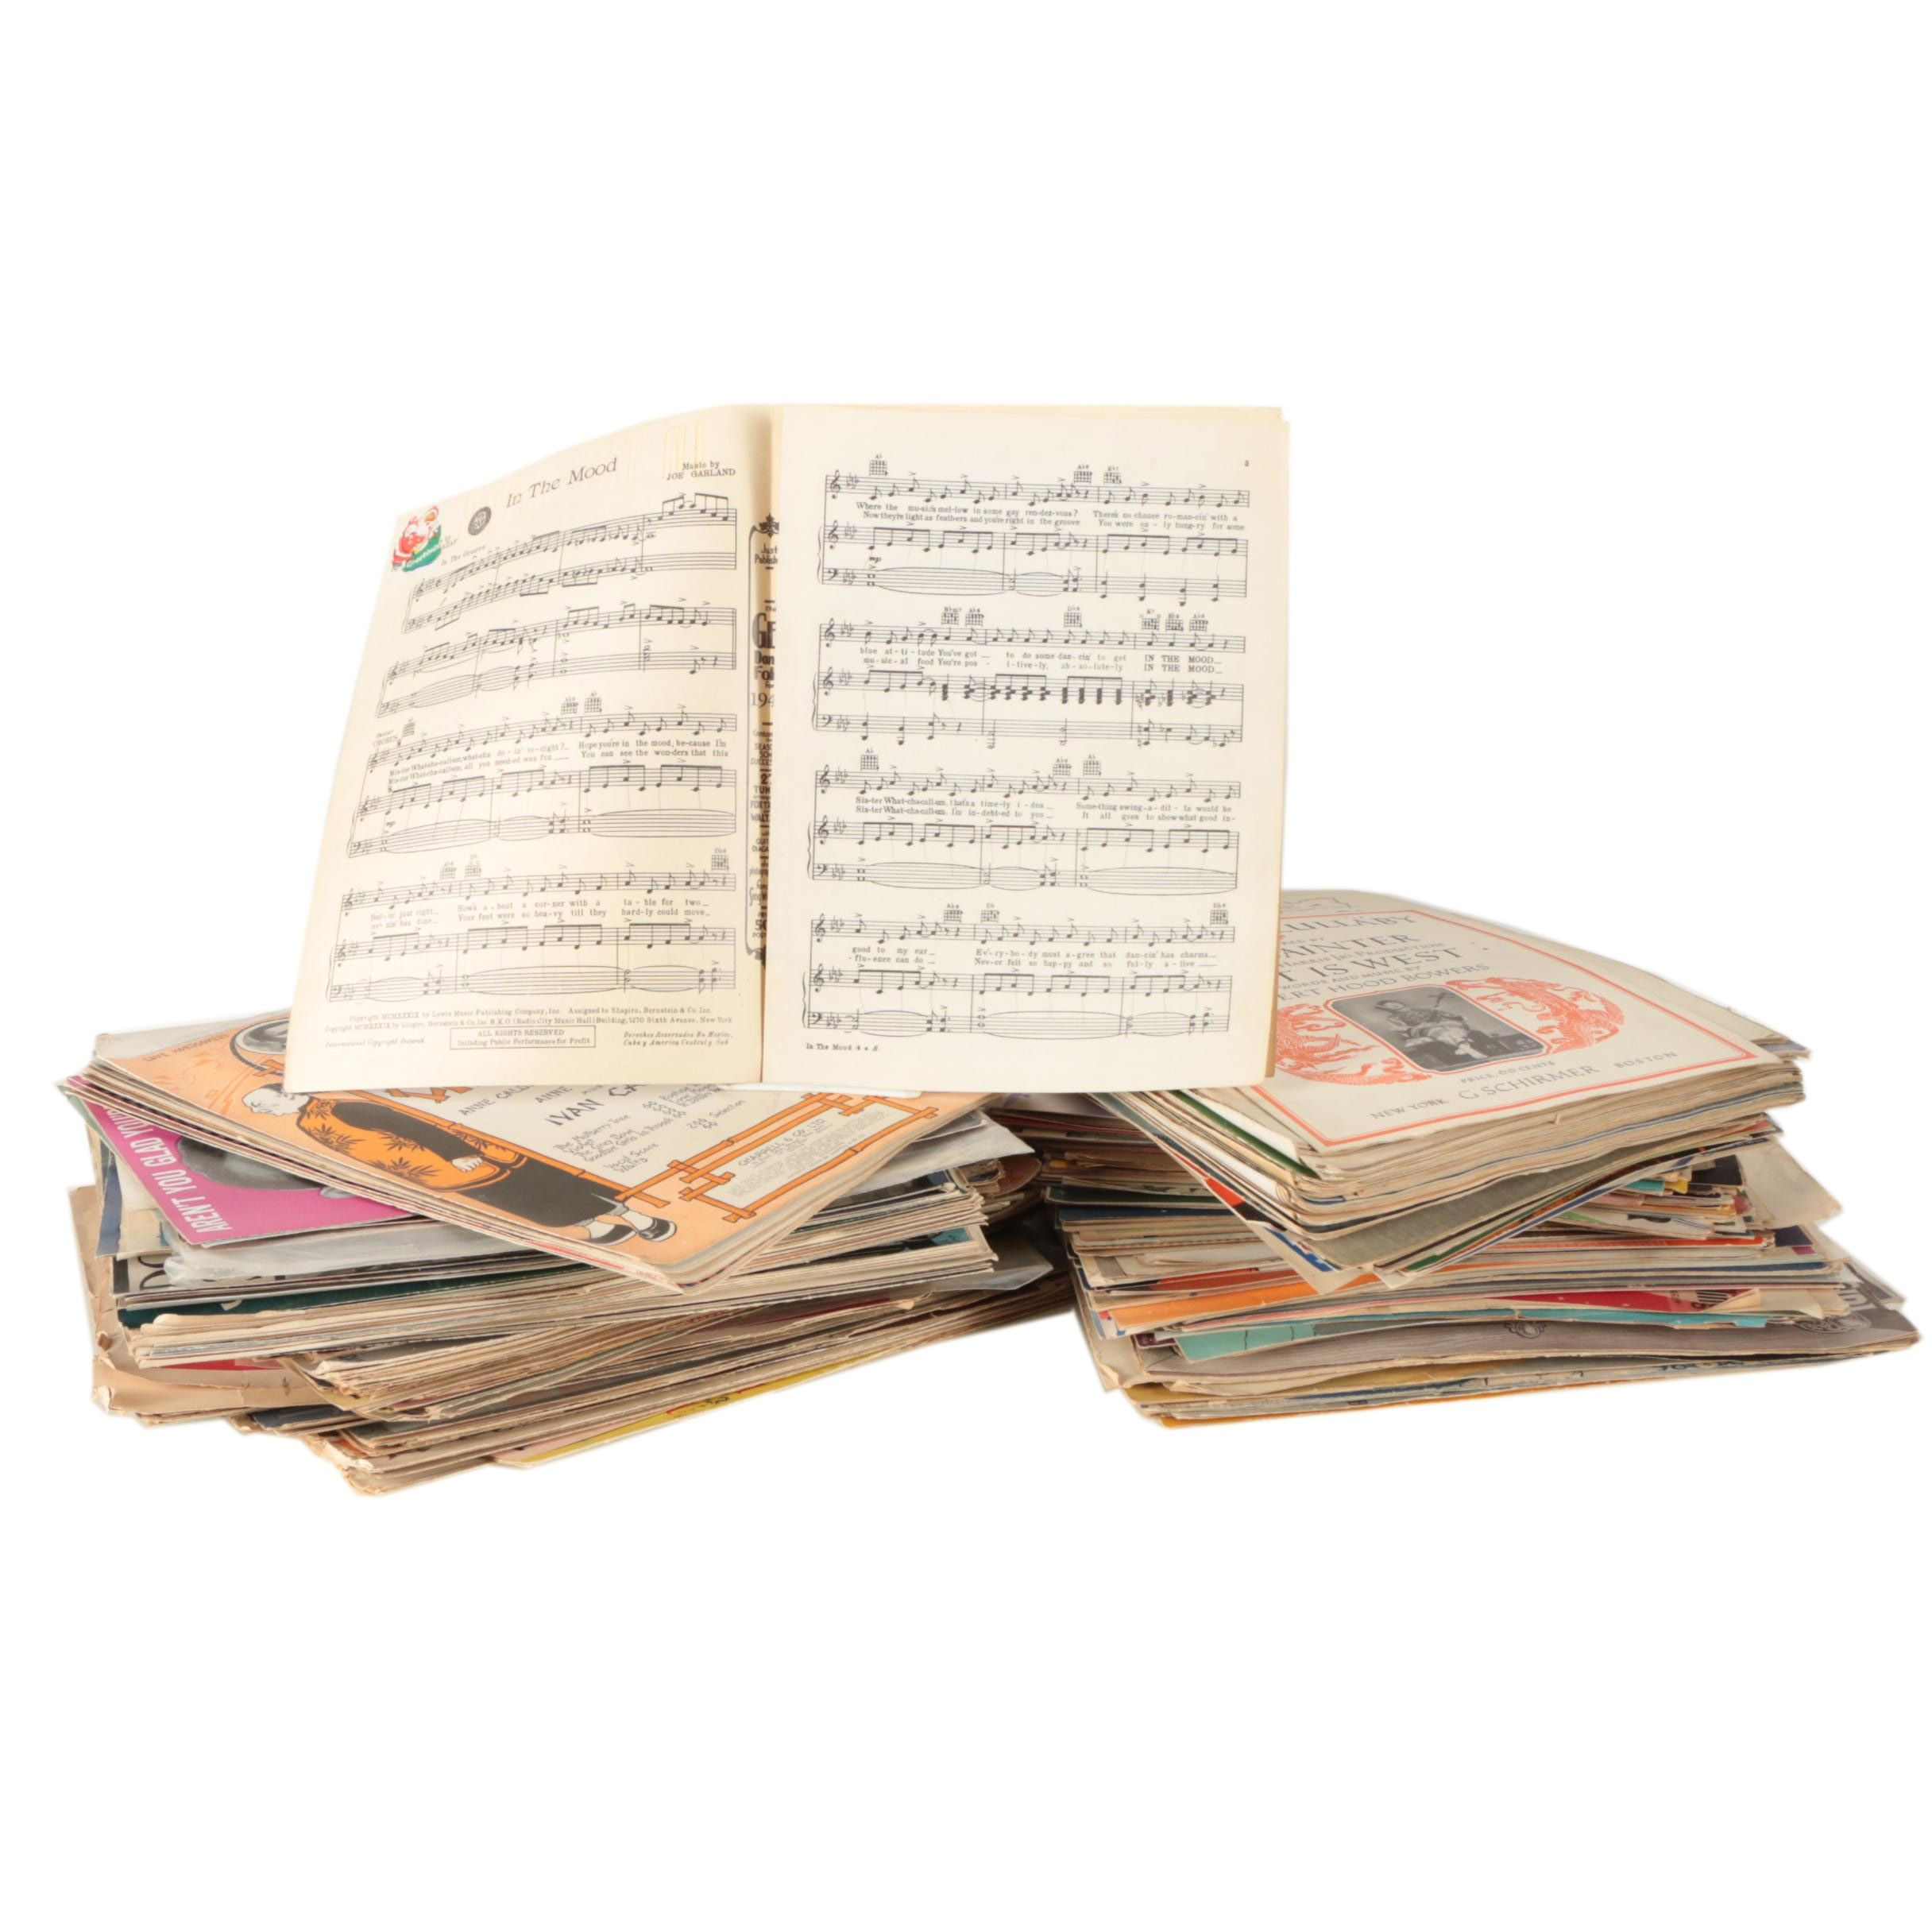 Over 100 Vintage Songbooks of Sheet Music